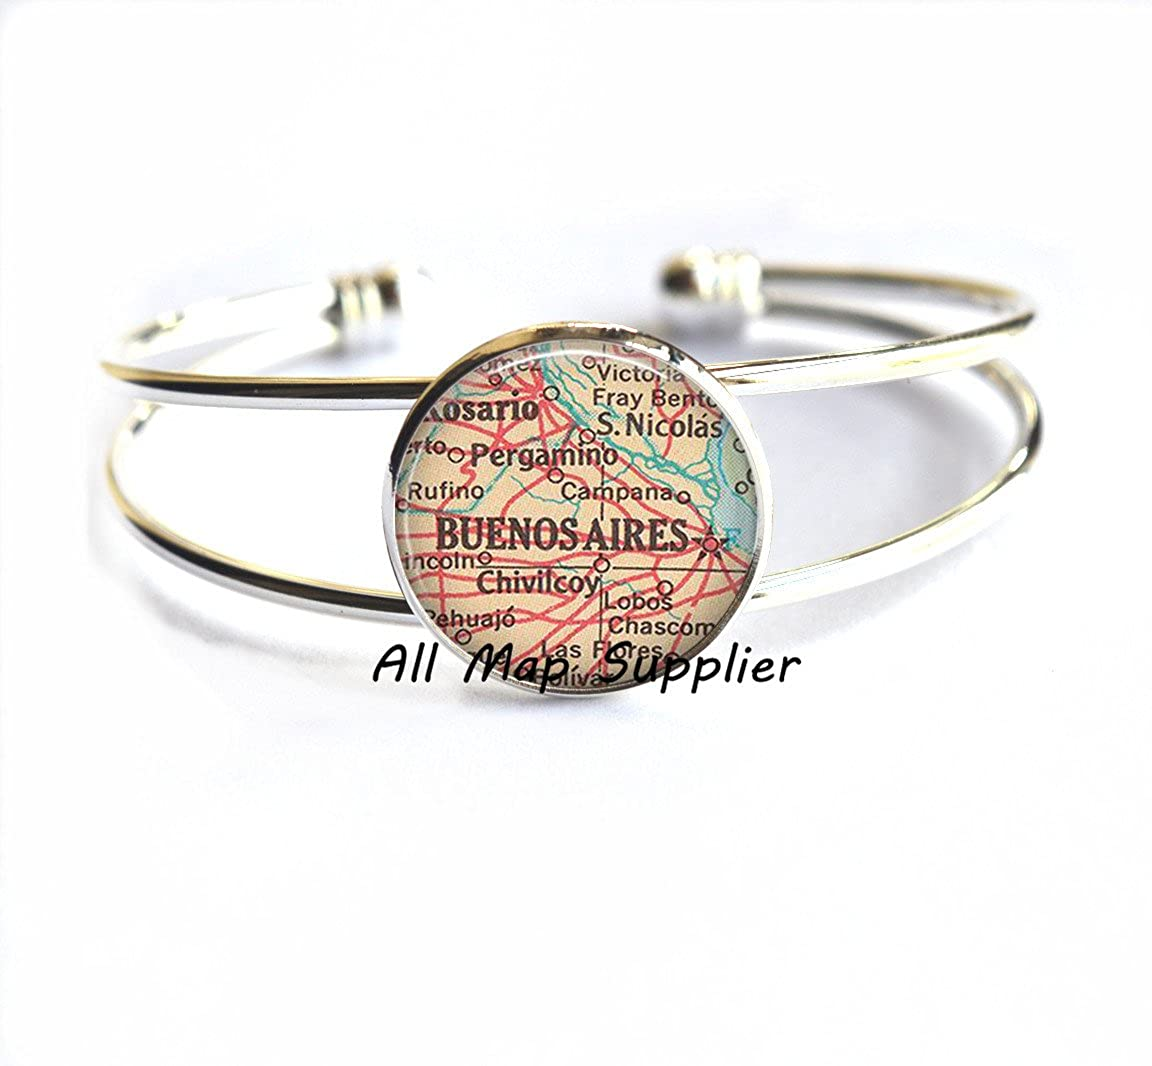 Buenos Aires Bracelet Buenos Aires map Bracelet Buenos Aires Bracelets,A0118 Charming Bracelet,Buenos Aires map Bracelets,